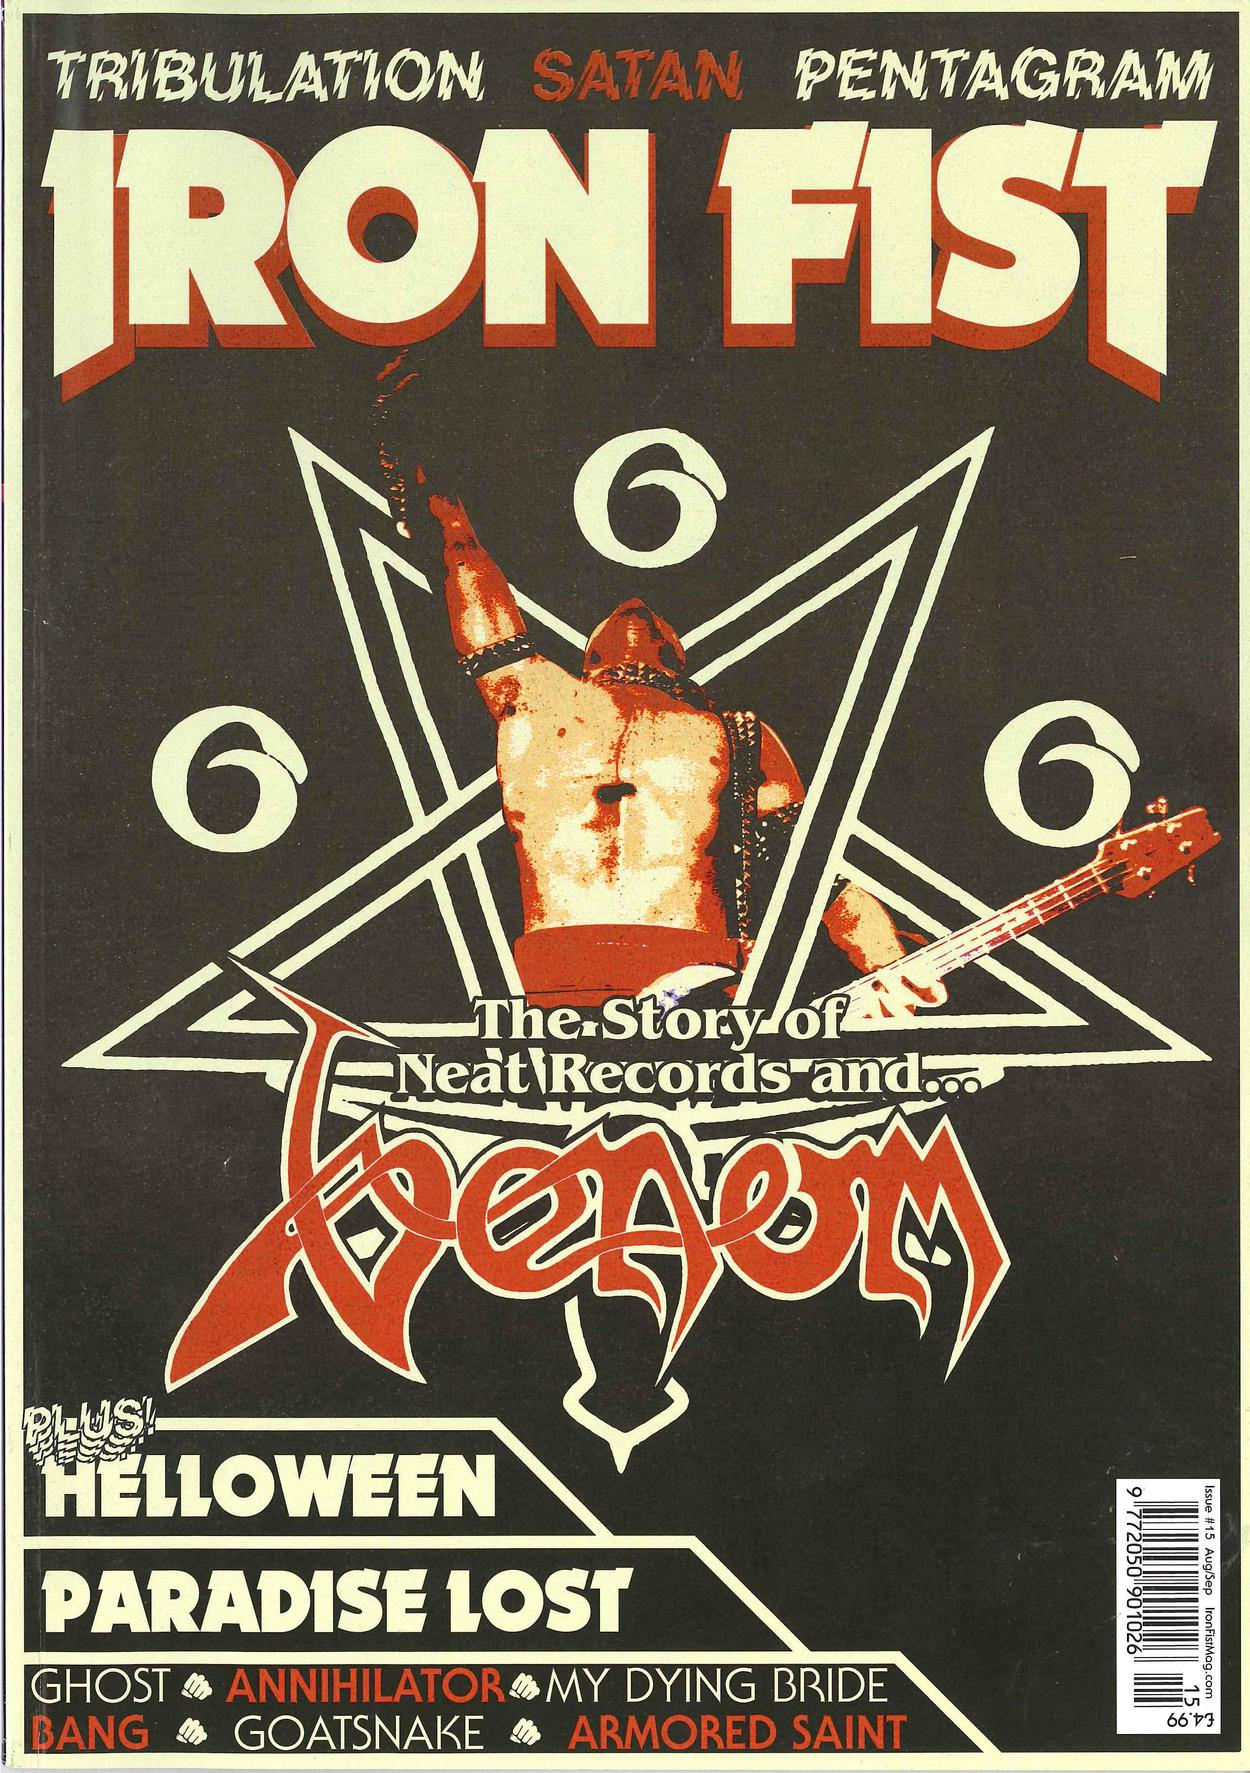 venom black metal iron fist magazine cover cronos